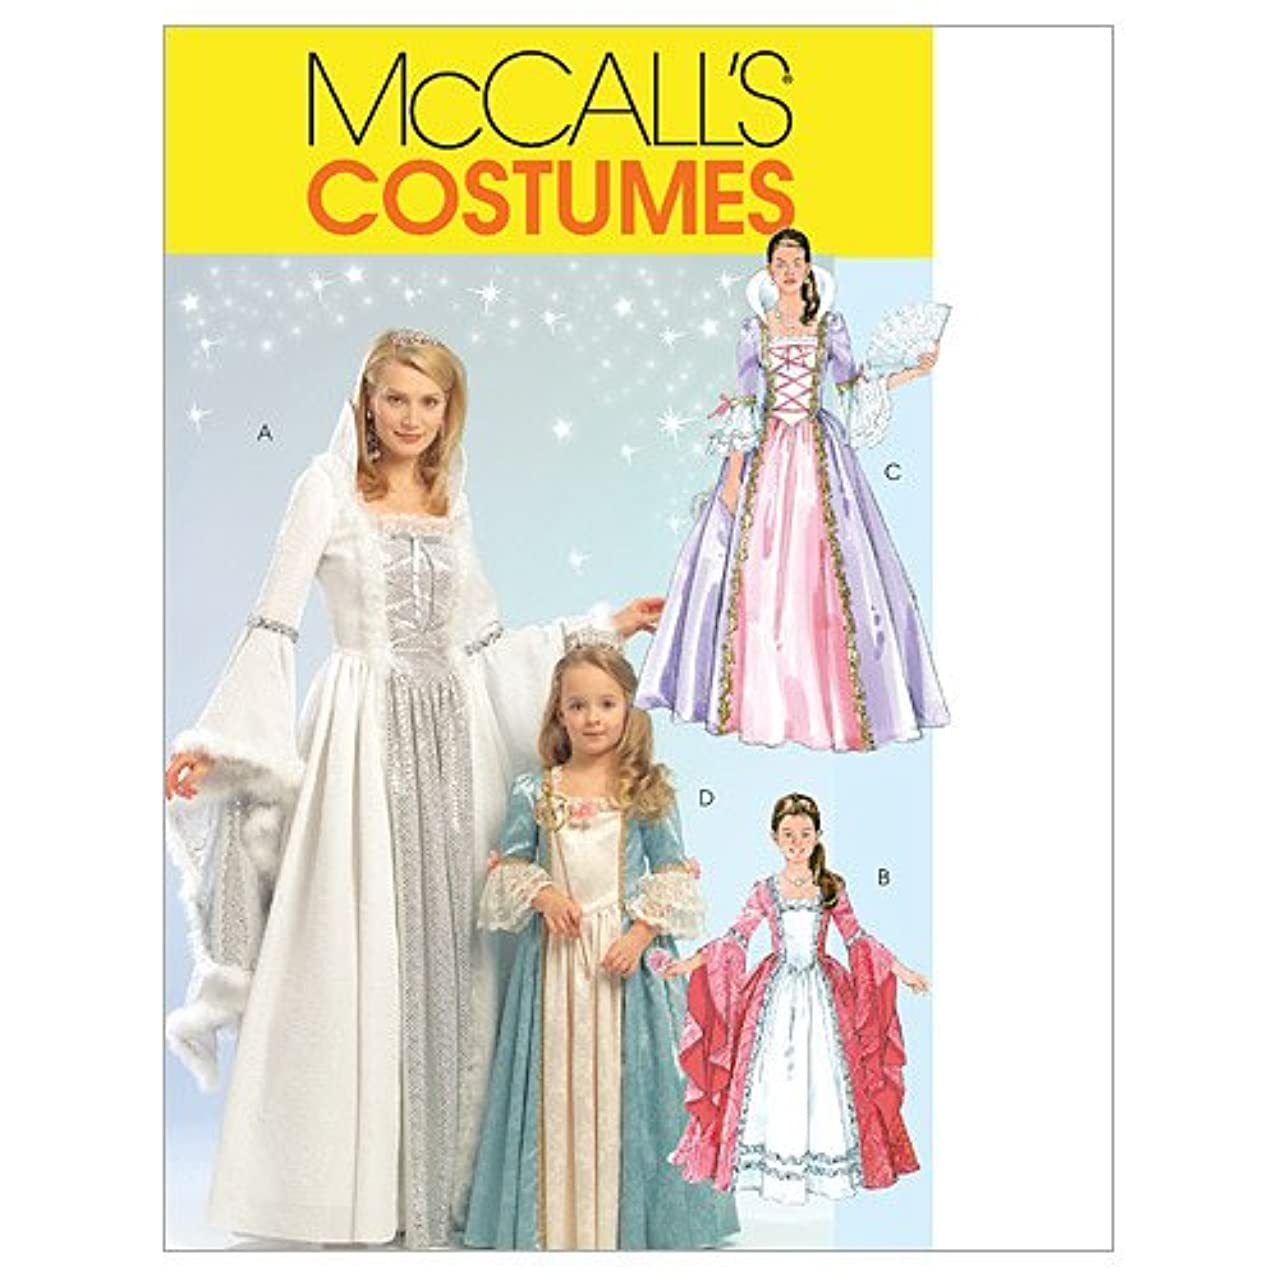 McCall's M5731 Women's Princess Dress Halloween Costume Patterns, Sizes S-XL